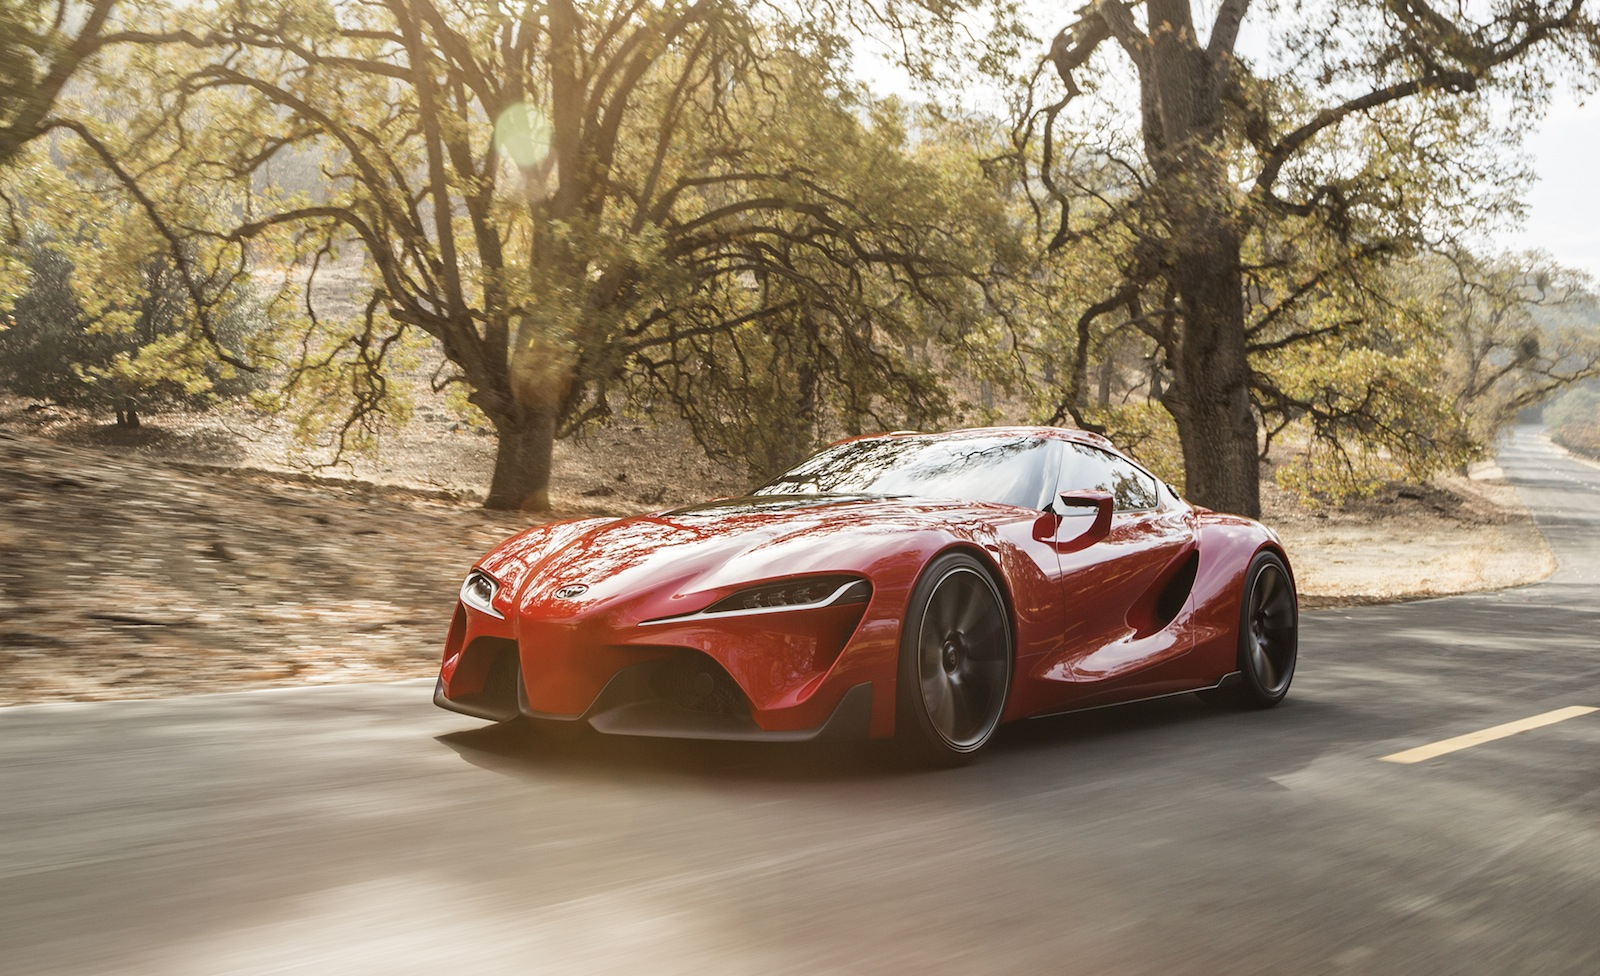 2018 Mustang Gt Review >> Toyota FT-1 concept previews Supra successor - photos | CarAdvice